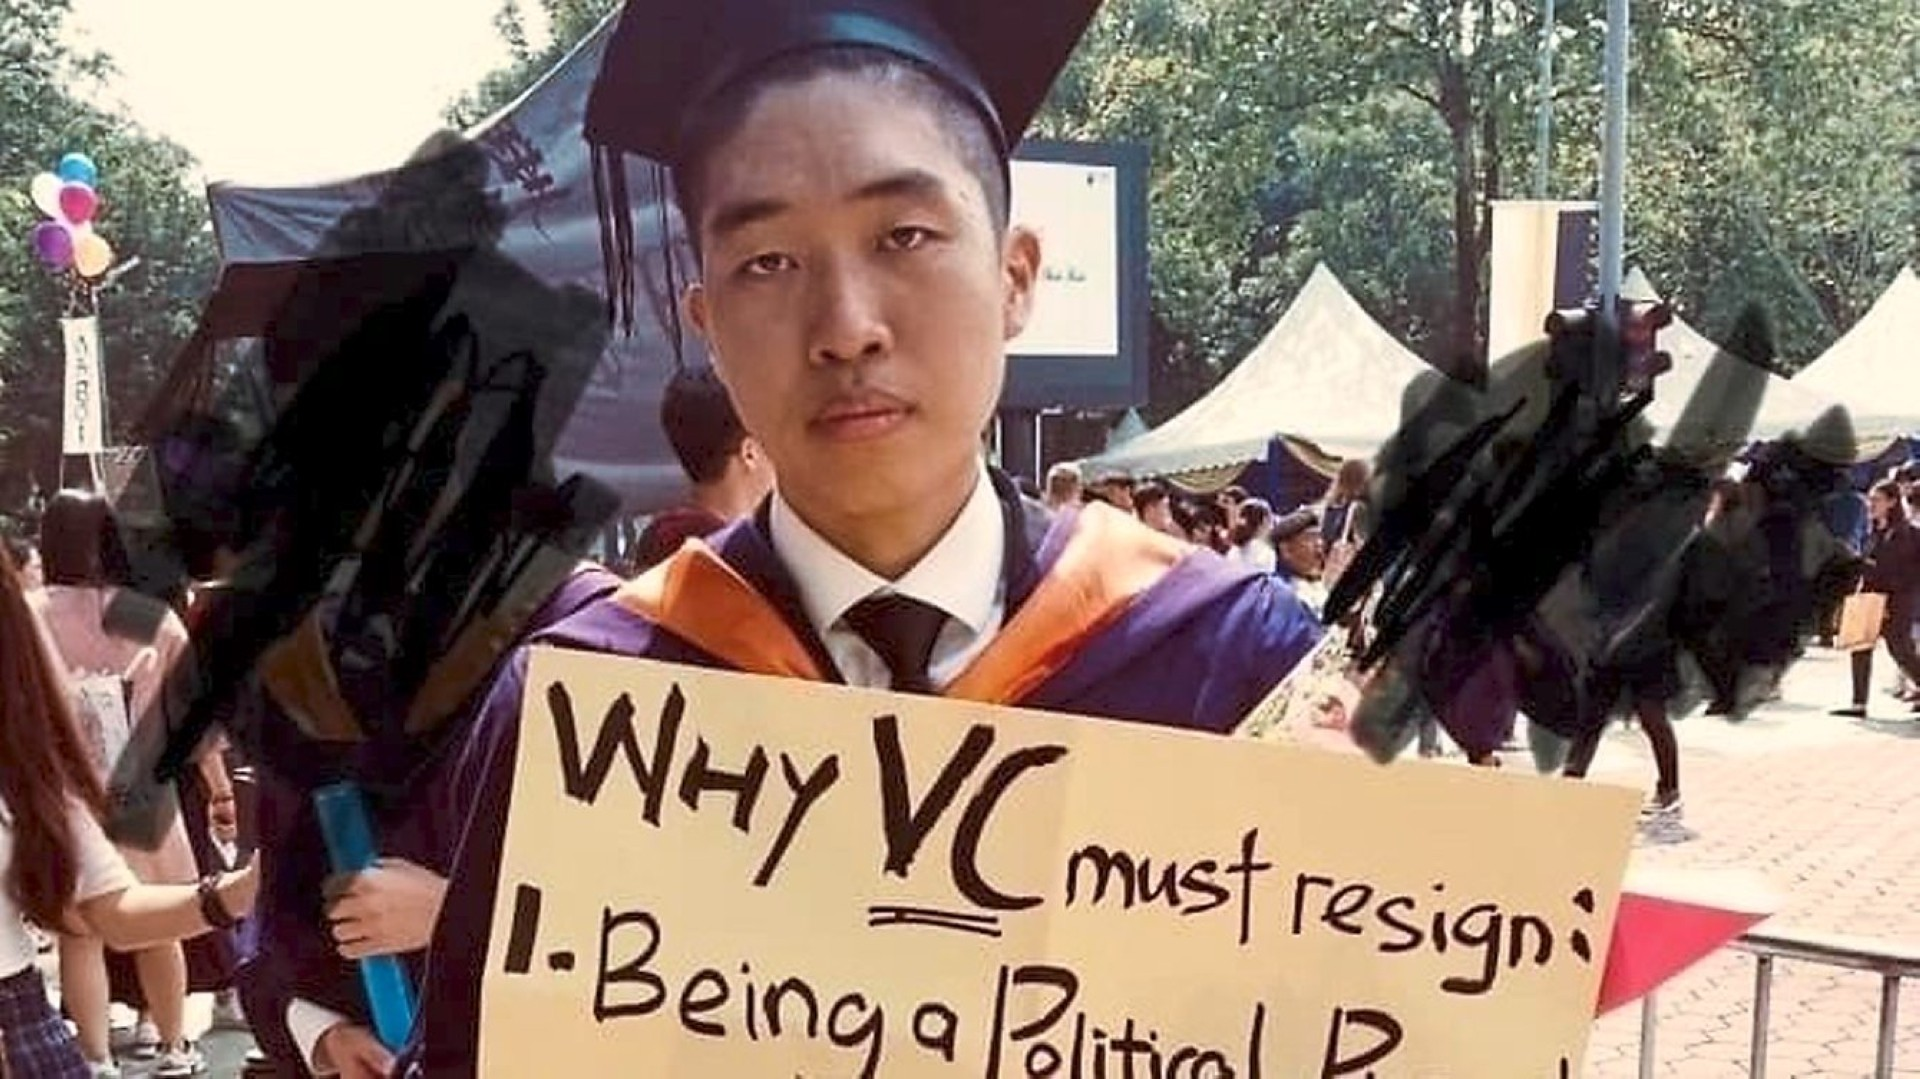 Wong calling for the VC's resignation at his graduation ceremony.